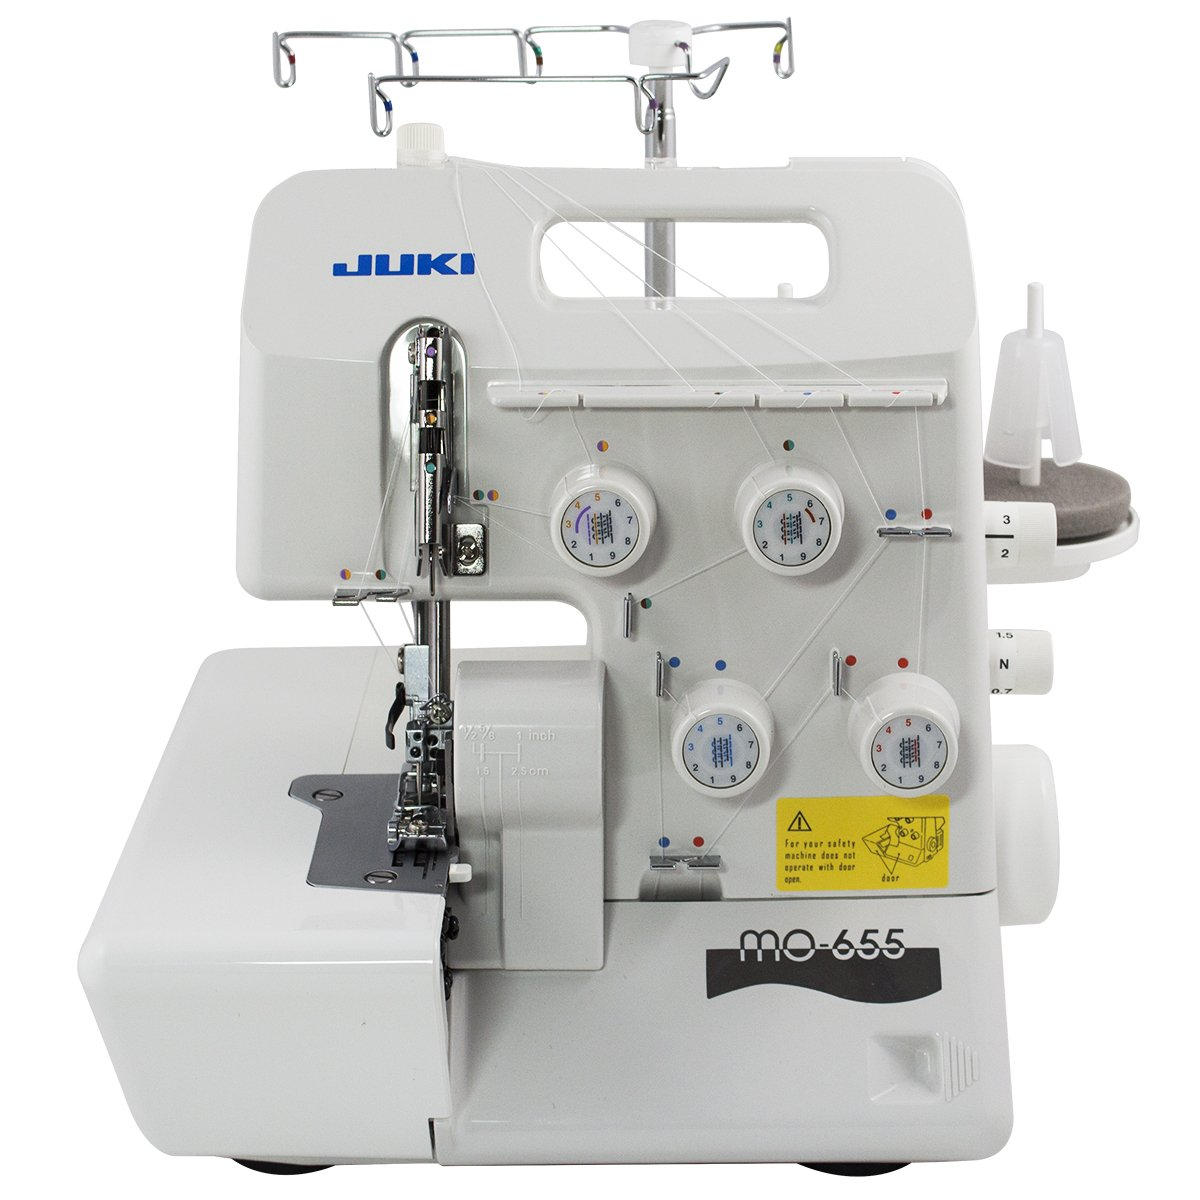 Juki Pearl Line MO-655 Serger – Product Features & Reviews 4